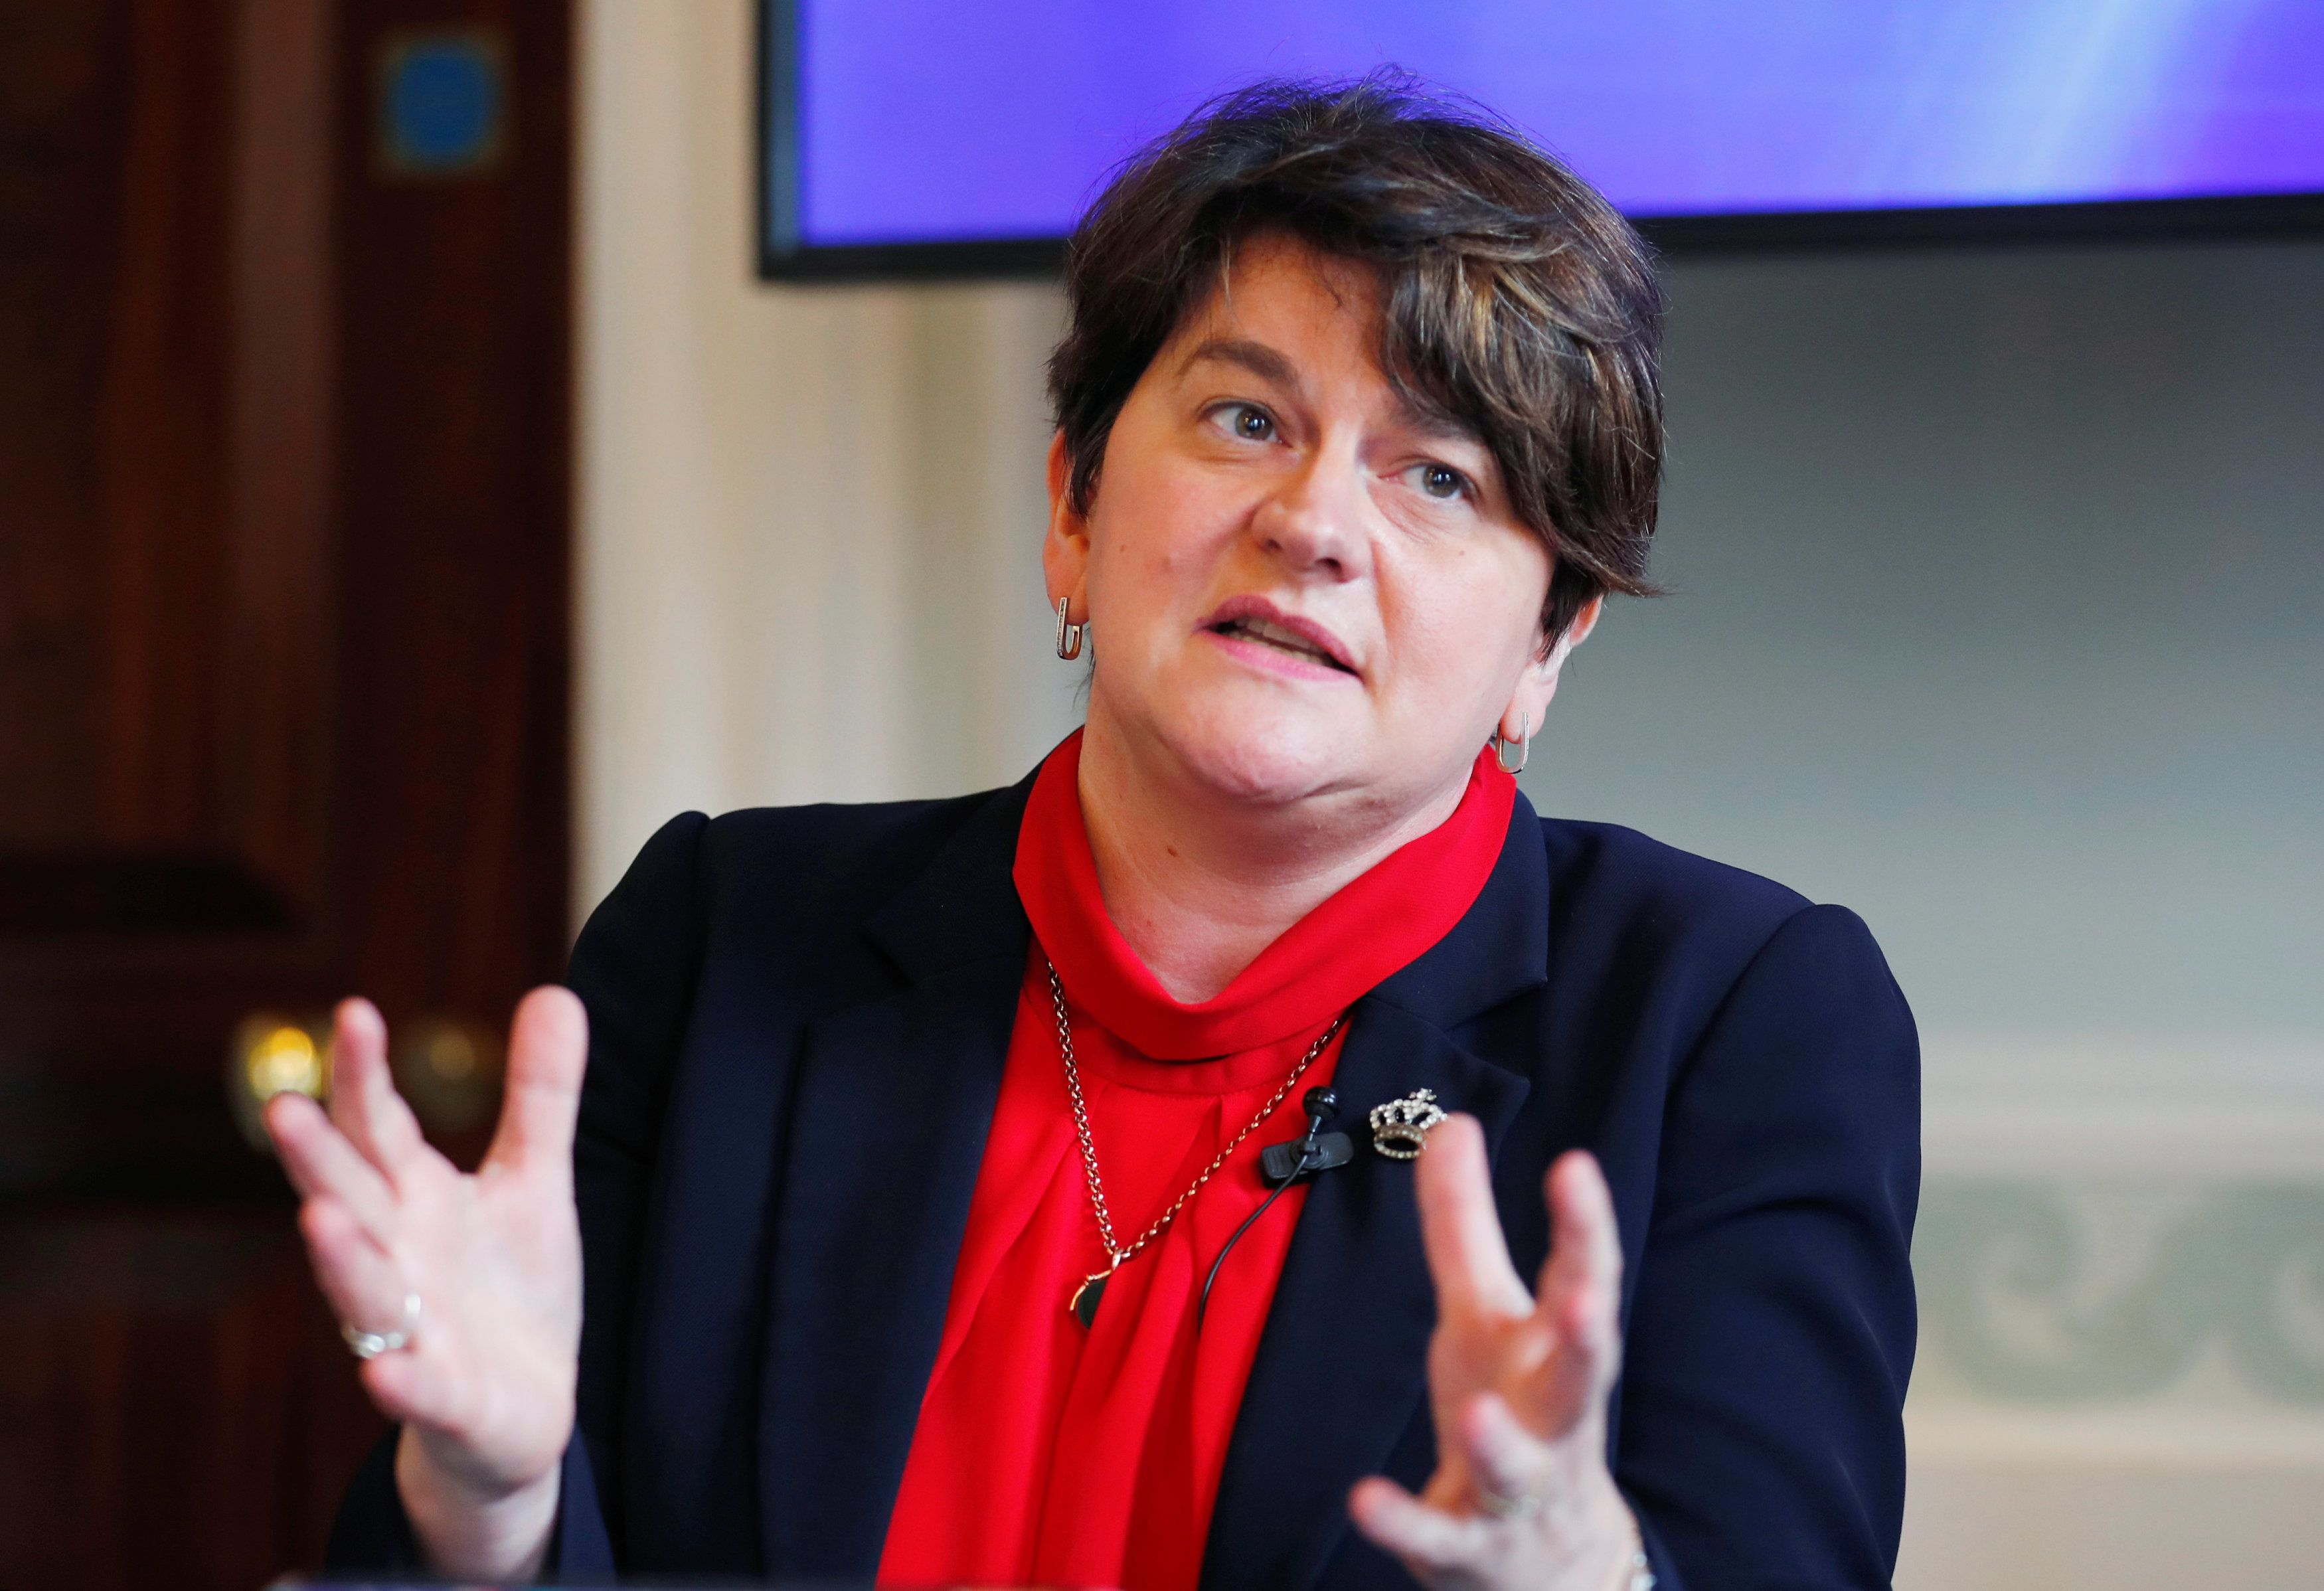 Theresa May 'Did Not Even Ask Brussels To Scrap The Backstop', Arlene Foster